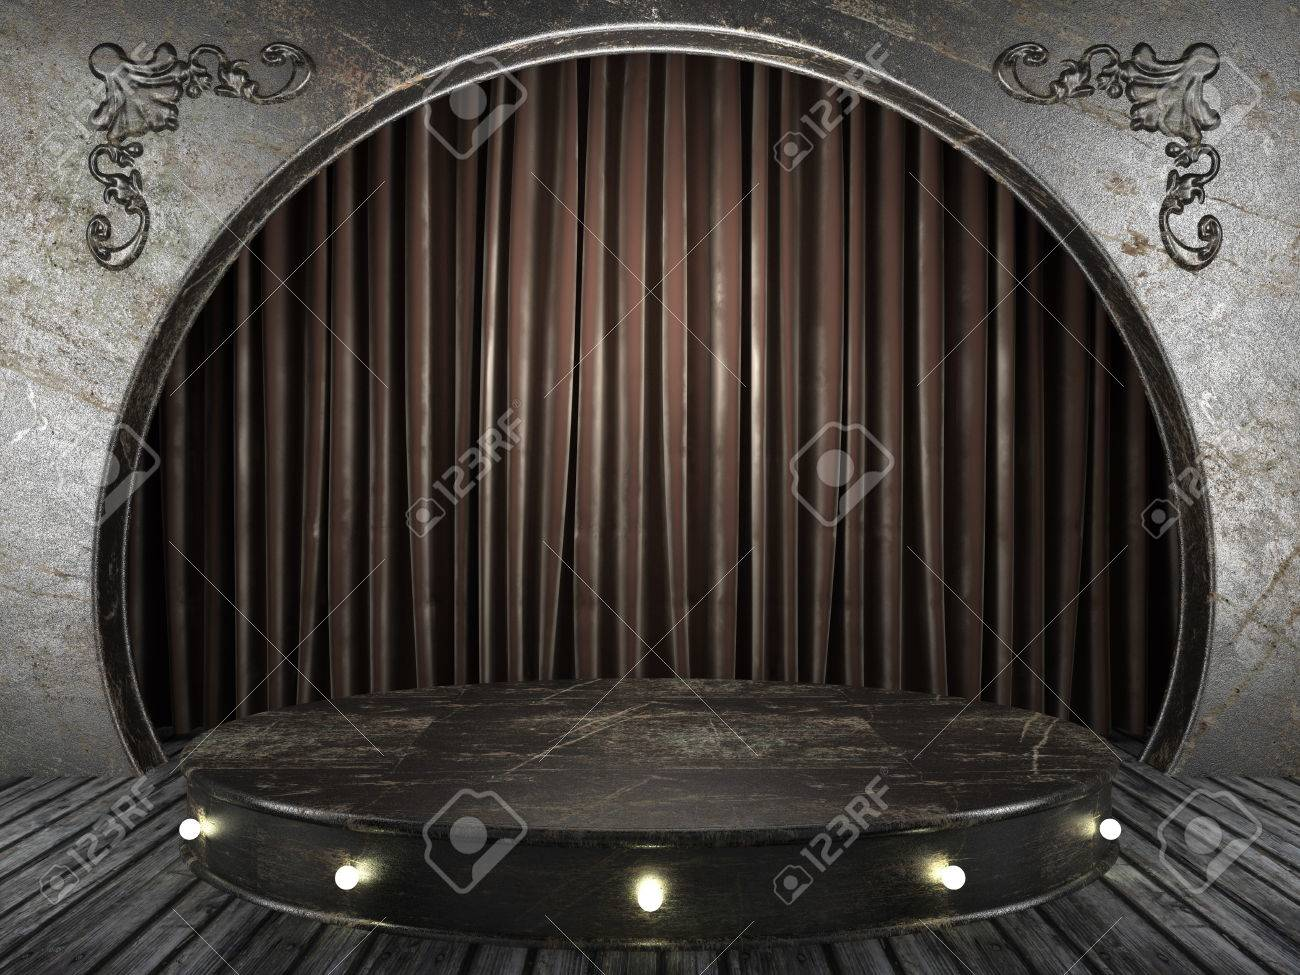 fabric curtain on old stage - 24834661